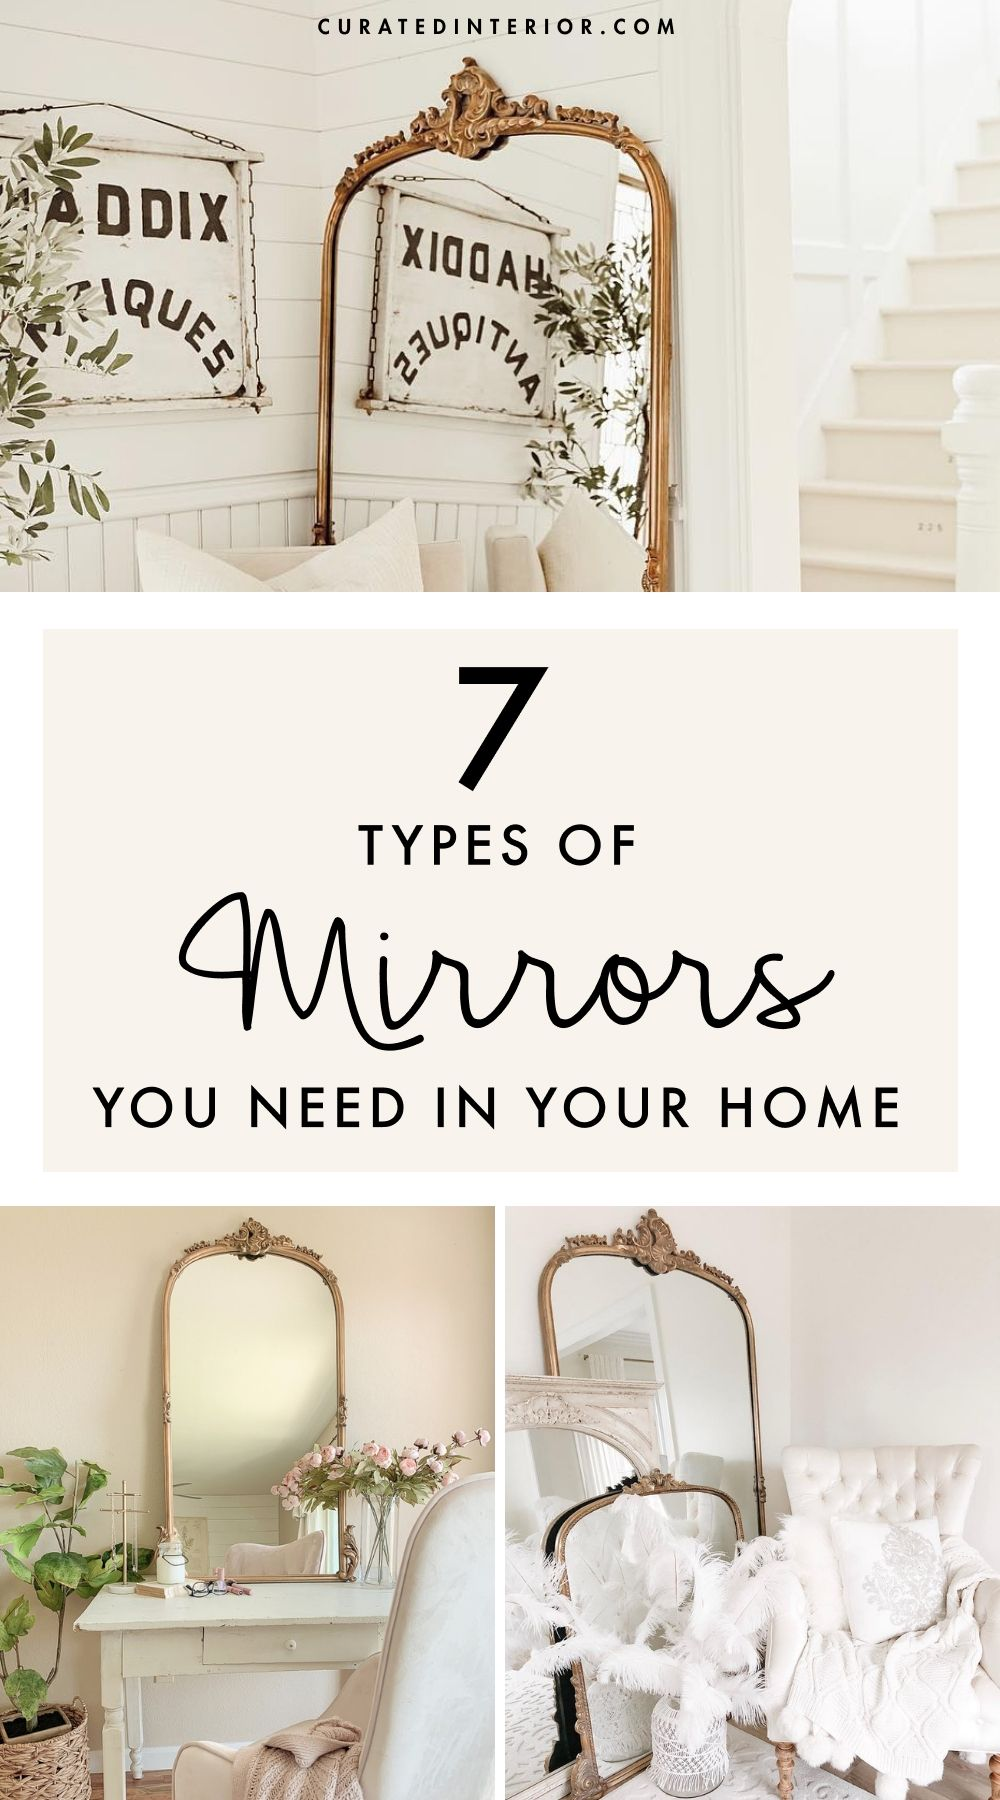 7 Types of Mirrors You Need in Your Home!